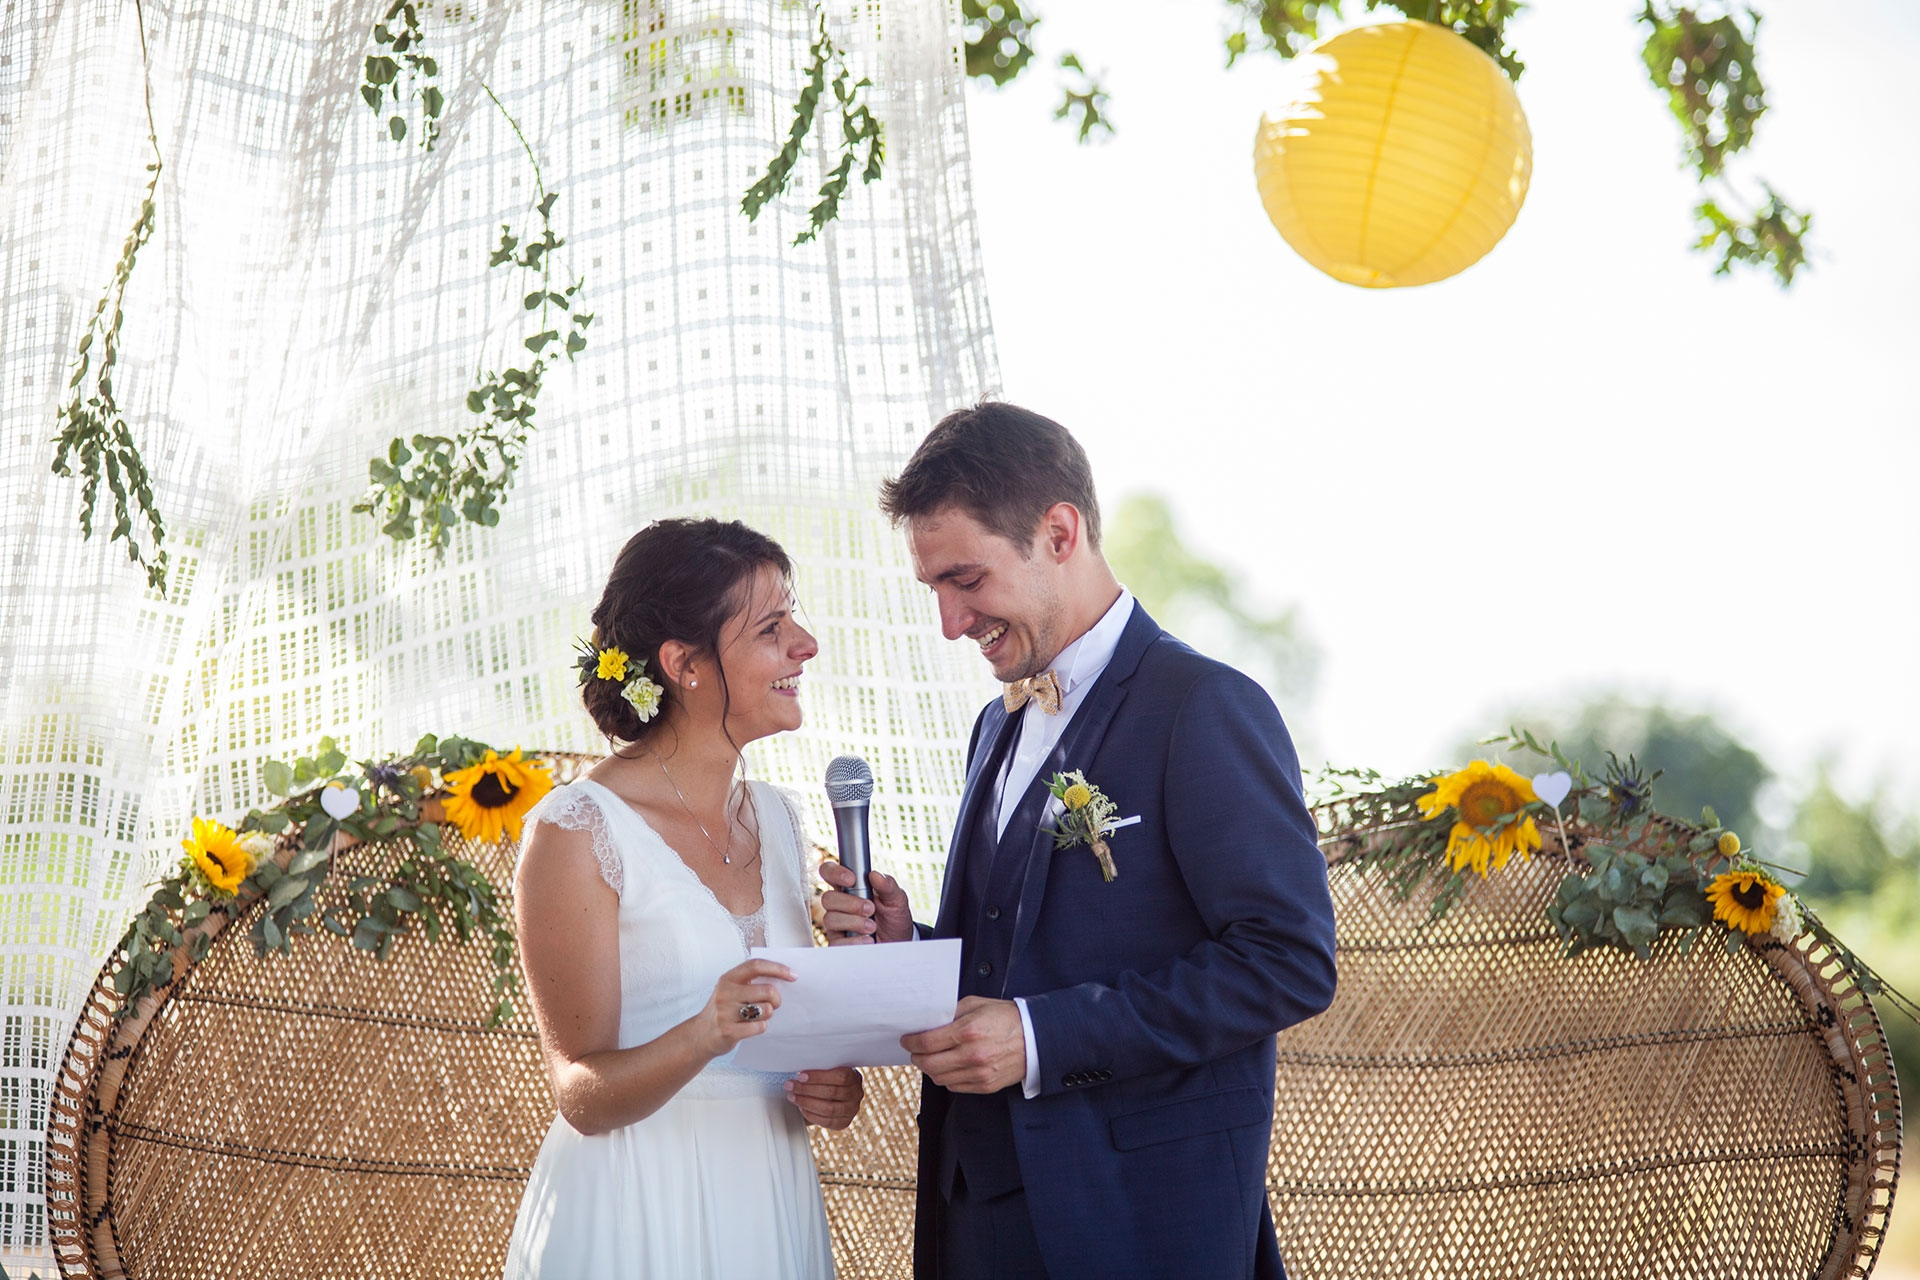 particuliers-evenements-mariage-oui-elise&quentin-44